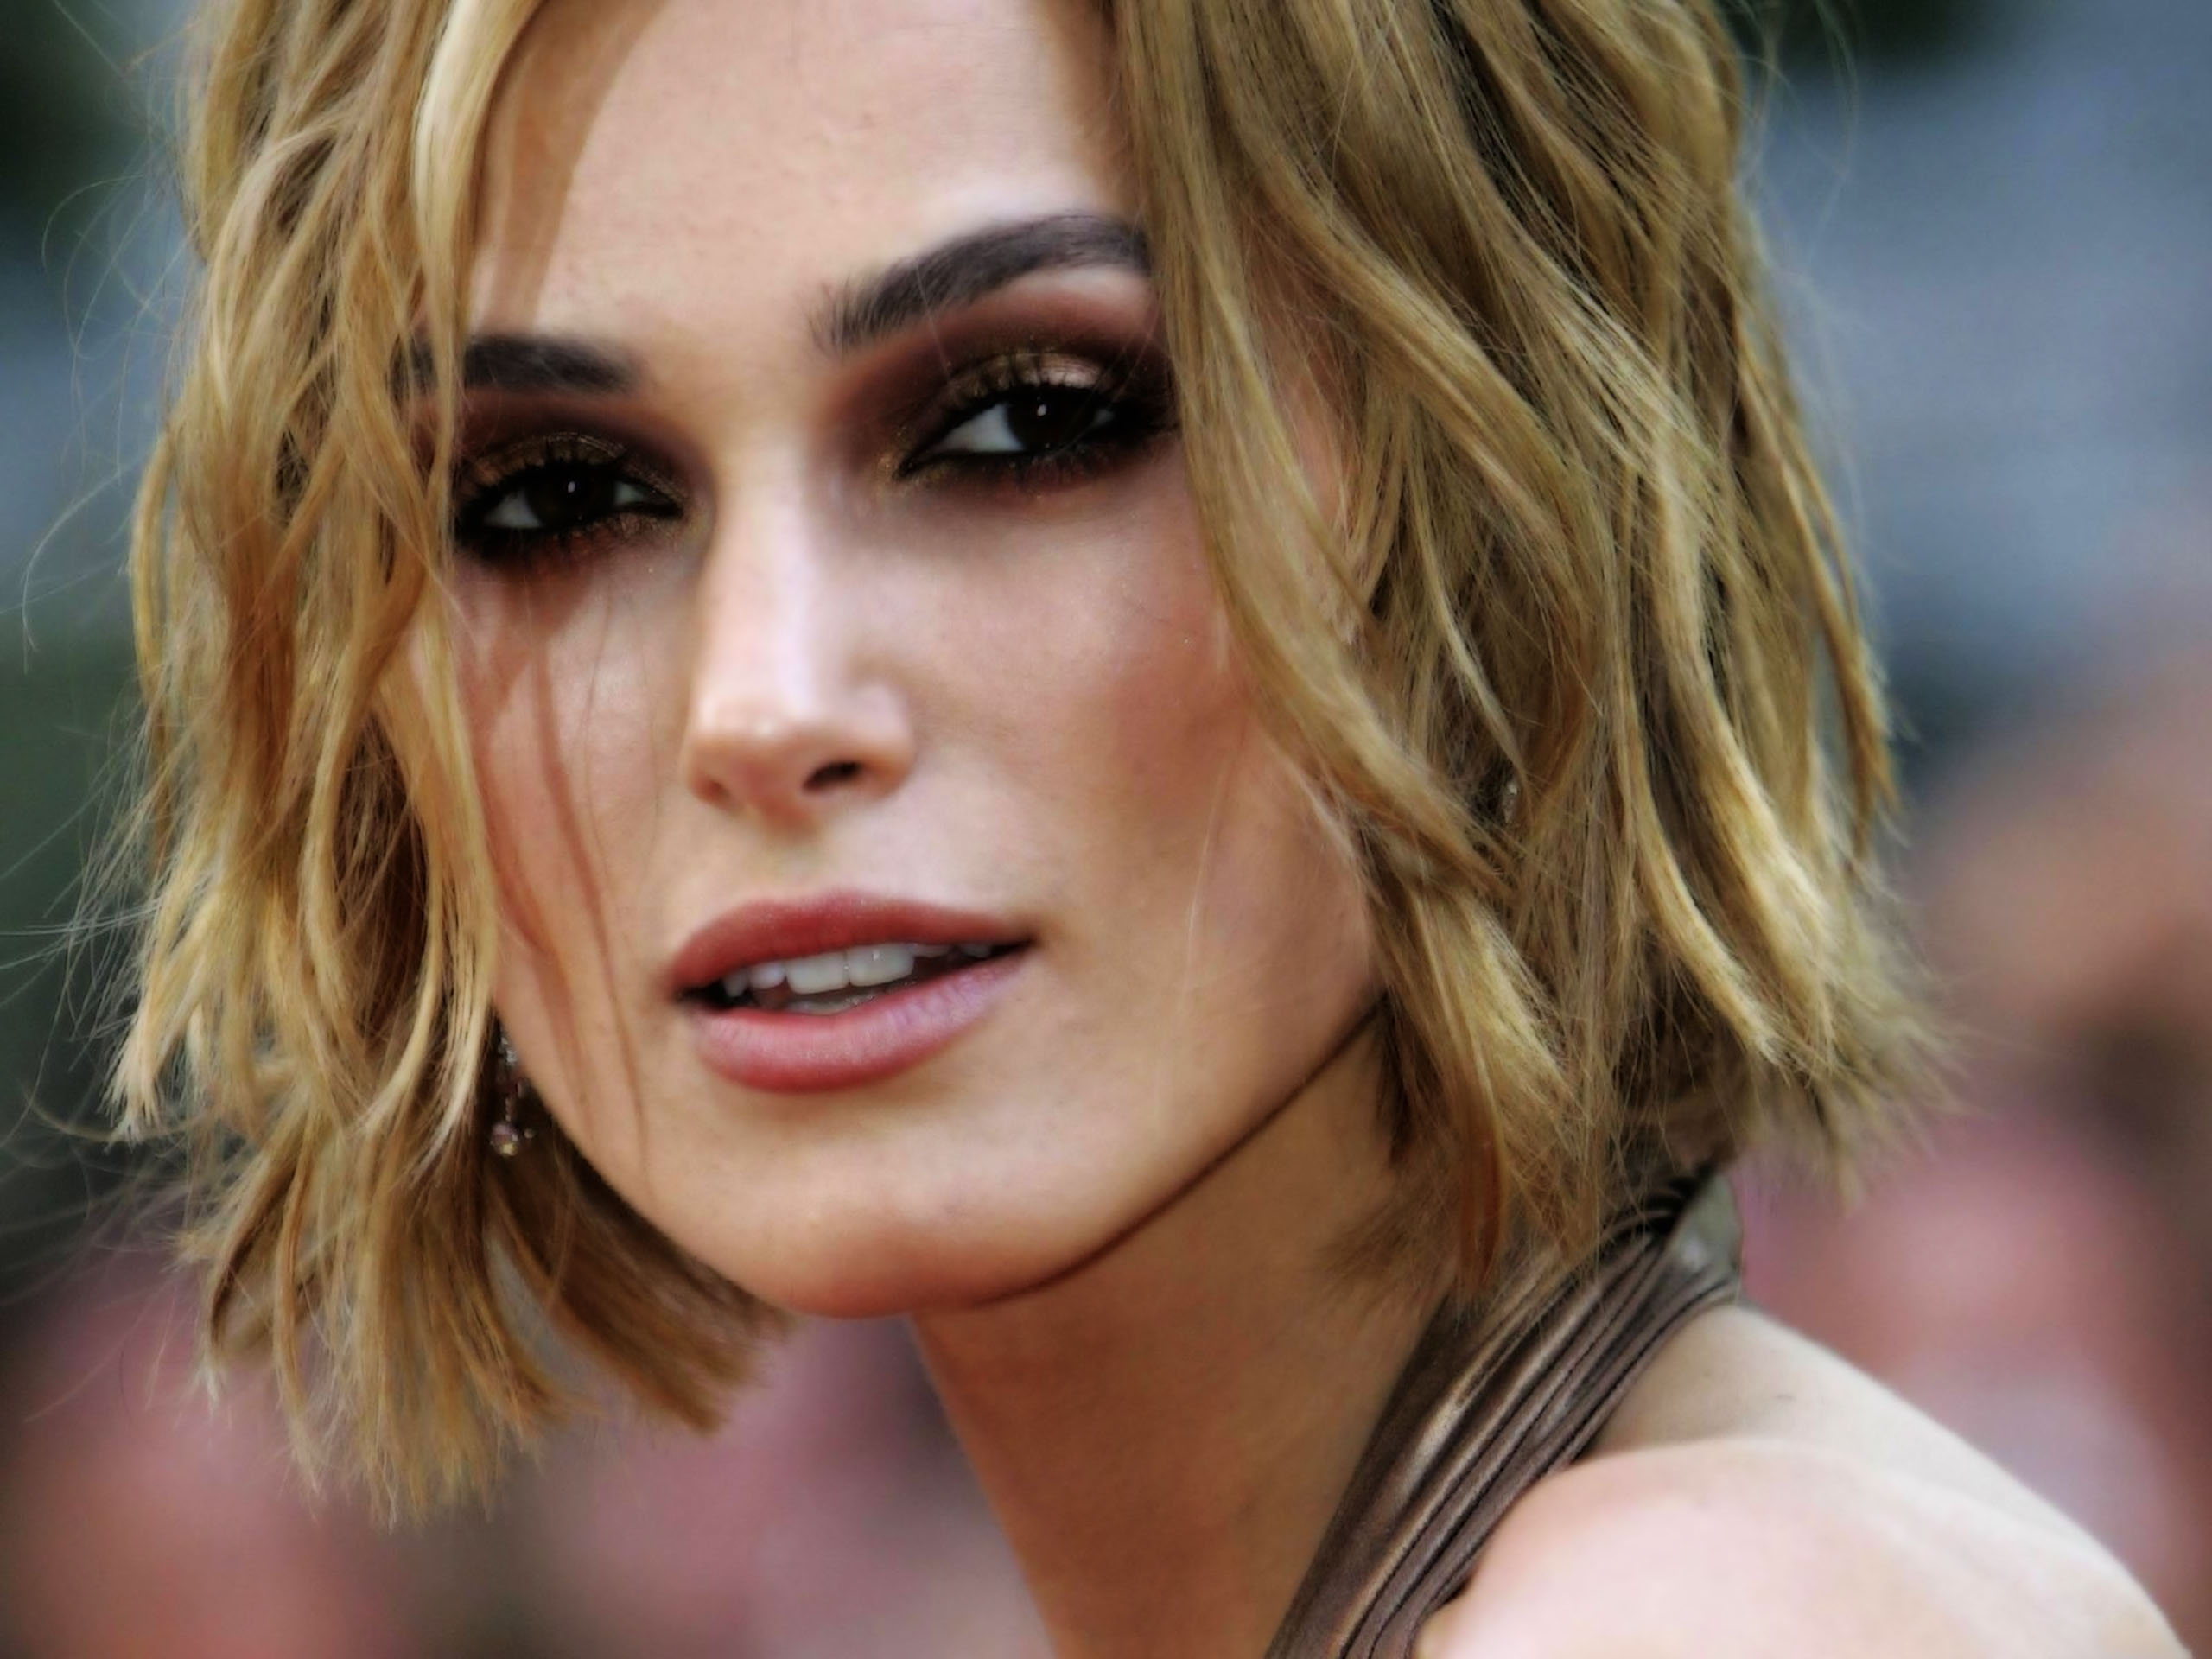 Keira Knightley Romance Hairstyles Pictures, Long Hairstyle 2013, Hairstyle 2013, New Long Hairstyle 2013, Celebrity Long Romance Hairstyles 2018